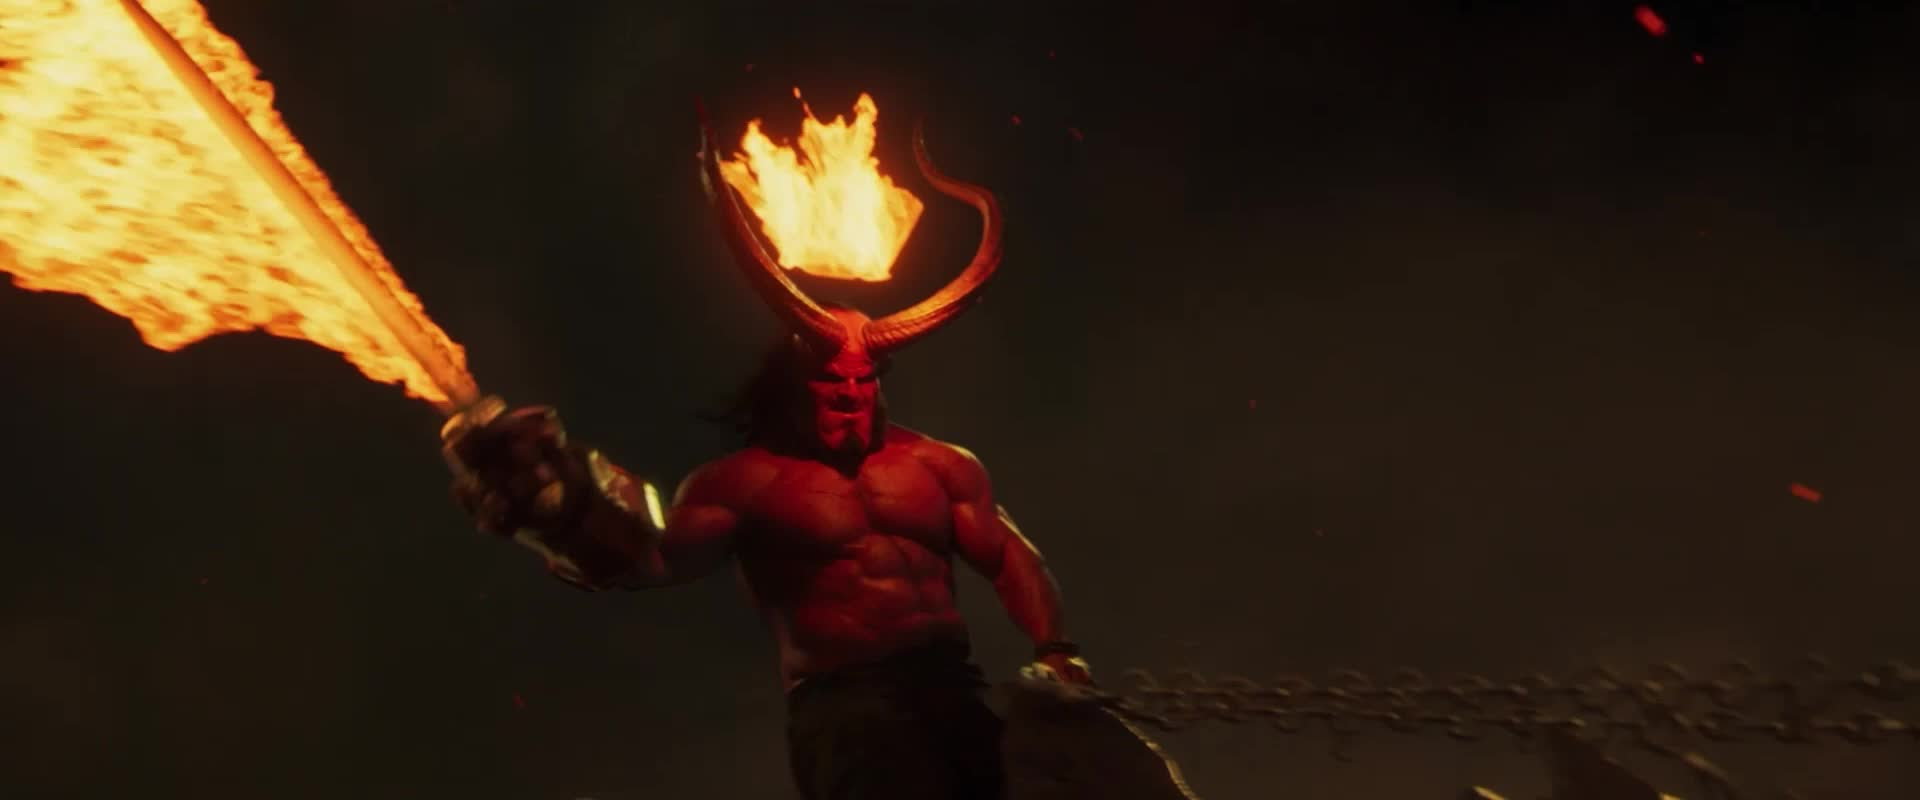 dark horse, dark horse comics, david harbour, dragon, fire, flames, hellboy, hellboy 2019, hellboy movie, its lit, lit, superhero, superheroes, Hellboy Flaming Sword Dragon GIFs